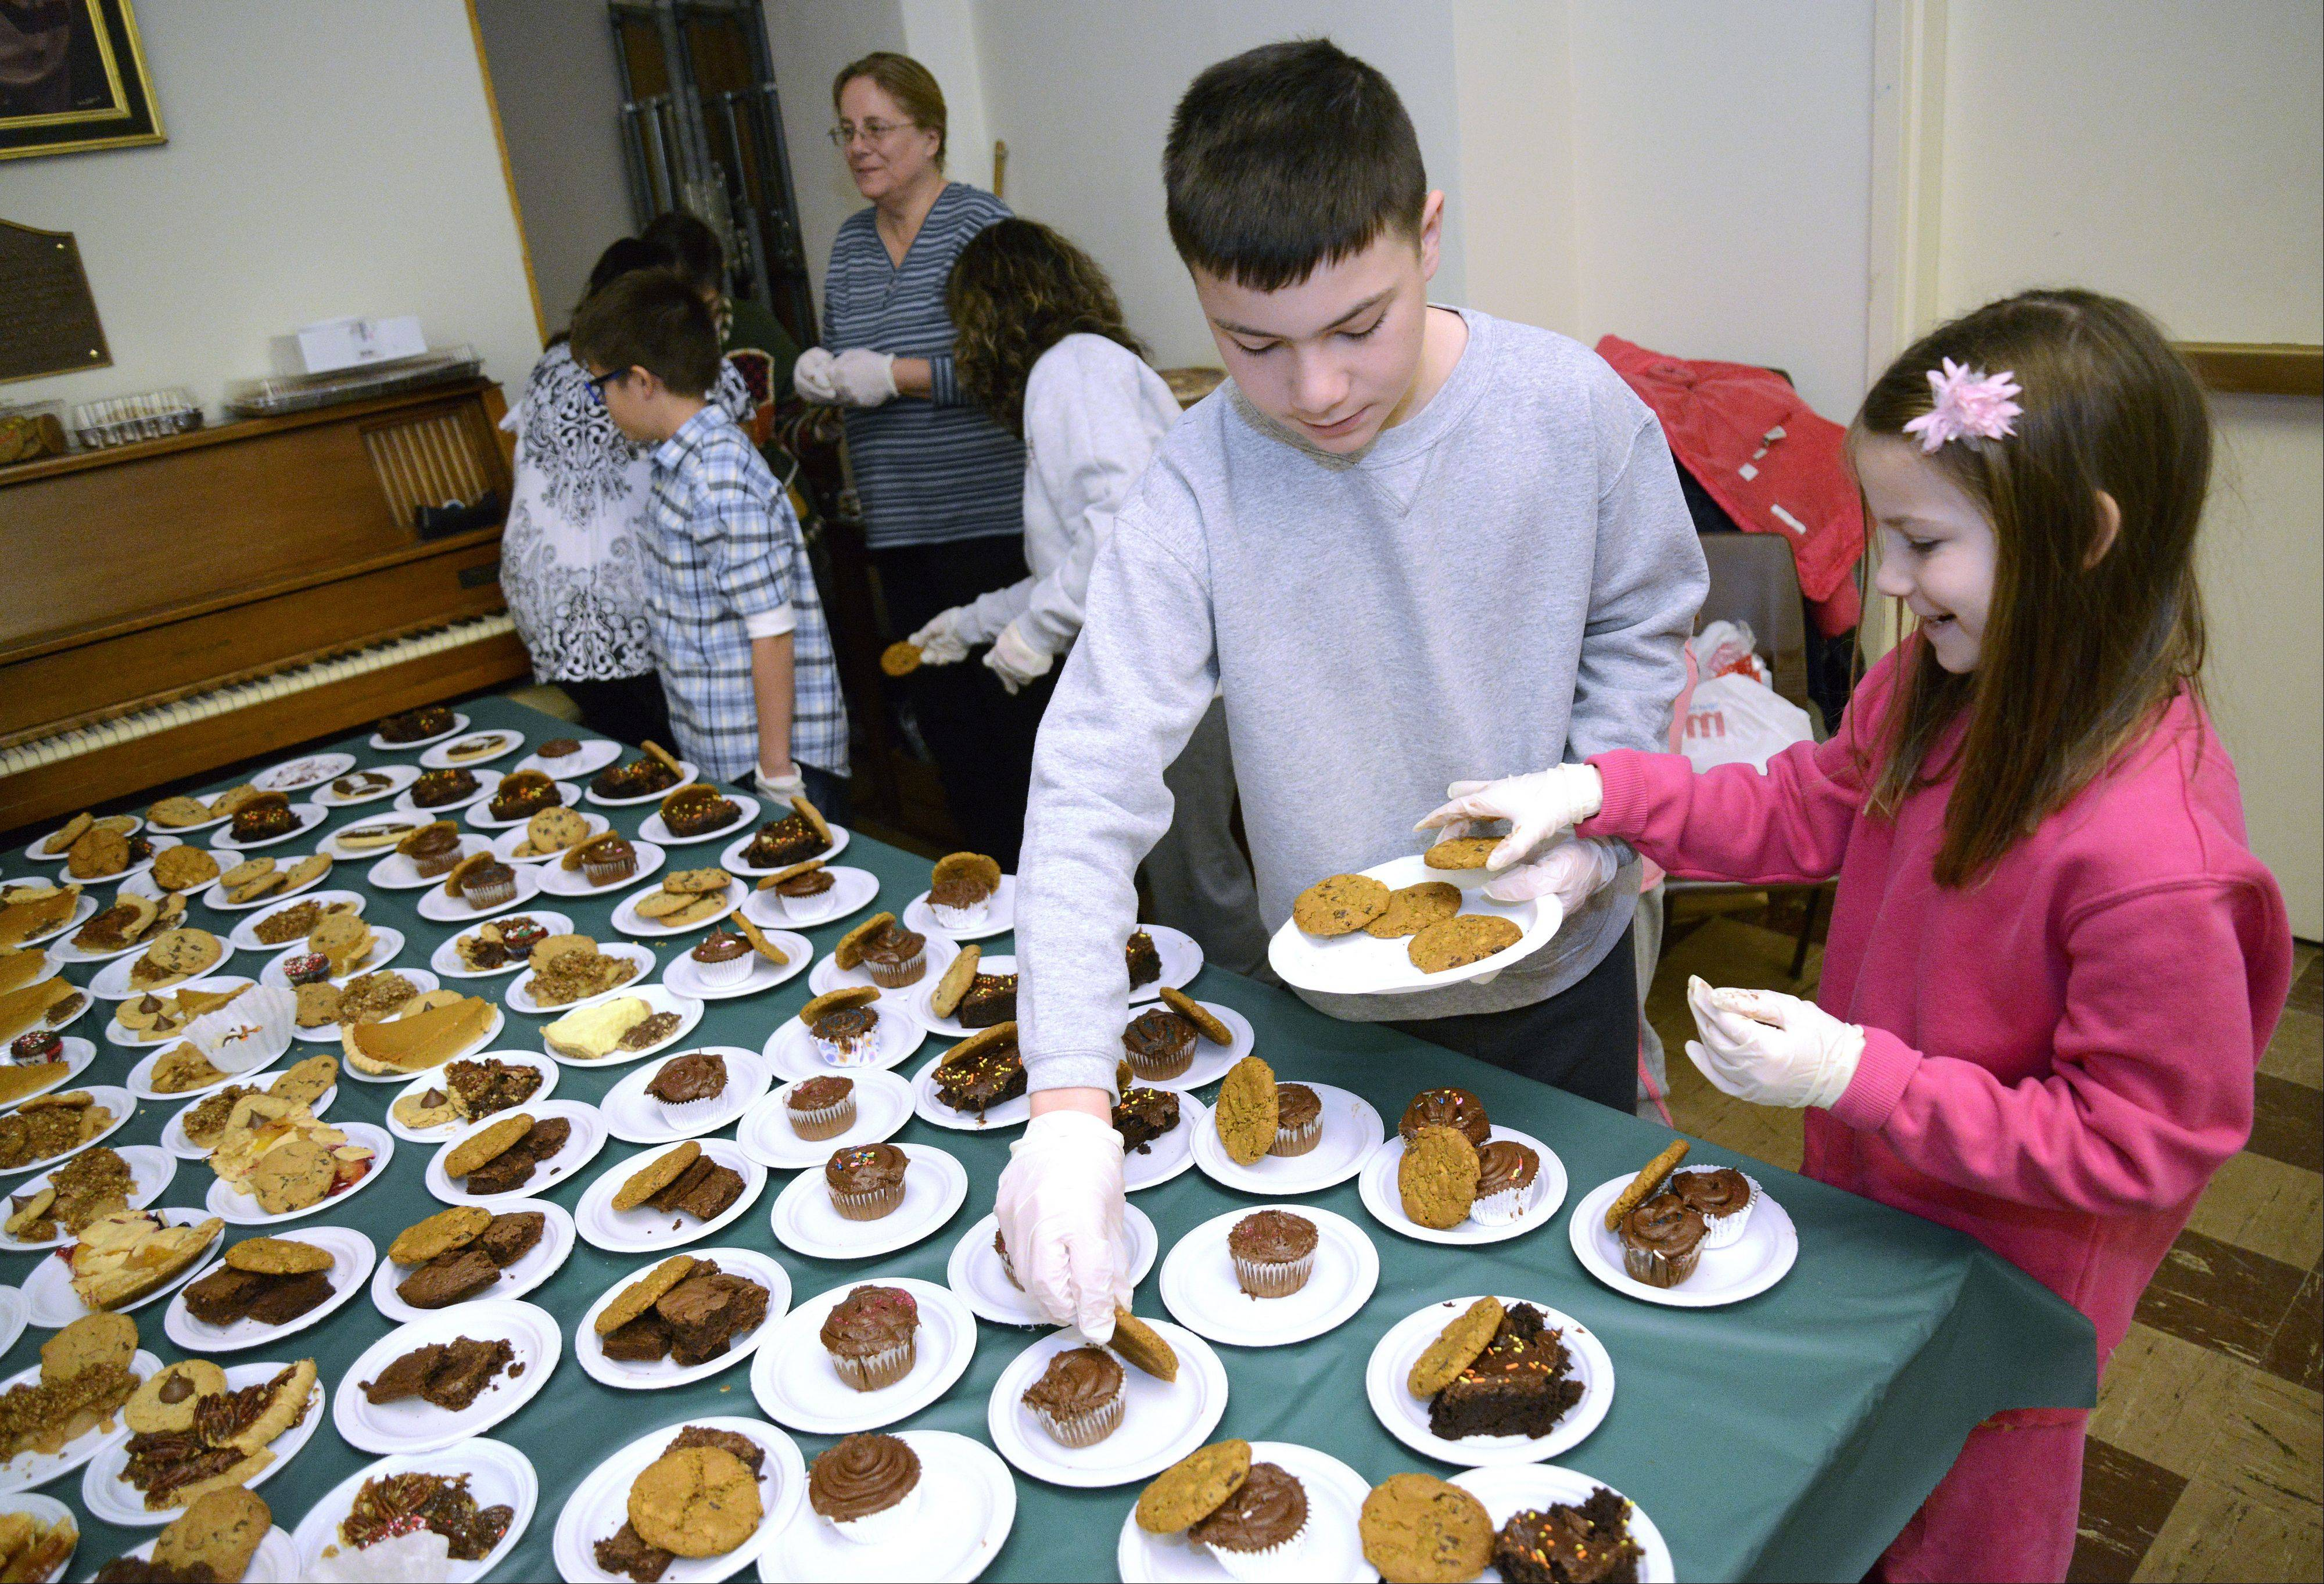 Shane Bonner, 12, of Hoffman Estates, and his sister, Angelina, 10, make desert plates during the Elgin Community Thanksgiving Dinner at the First United Methodist Church in Elgin Thursday.